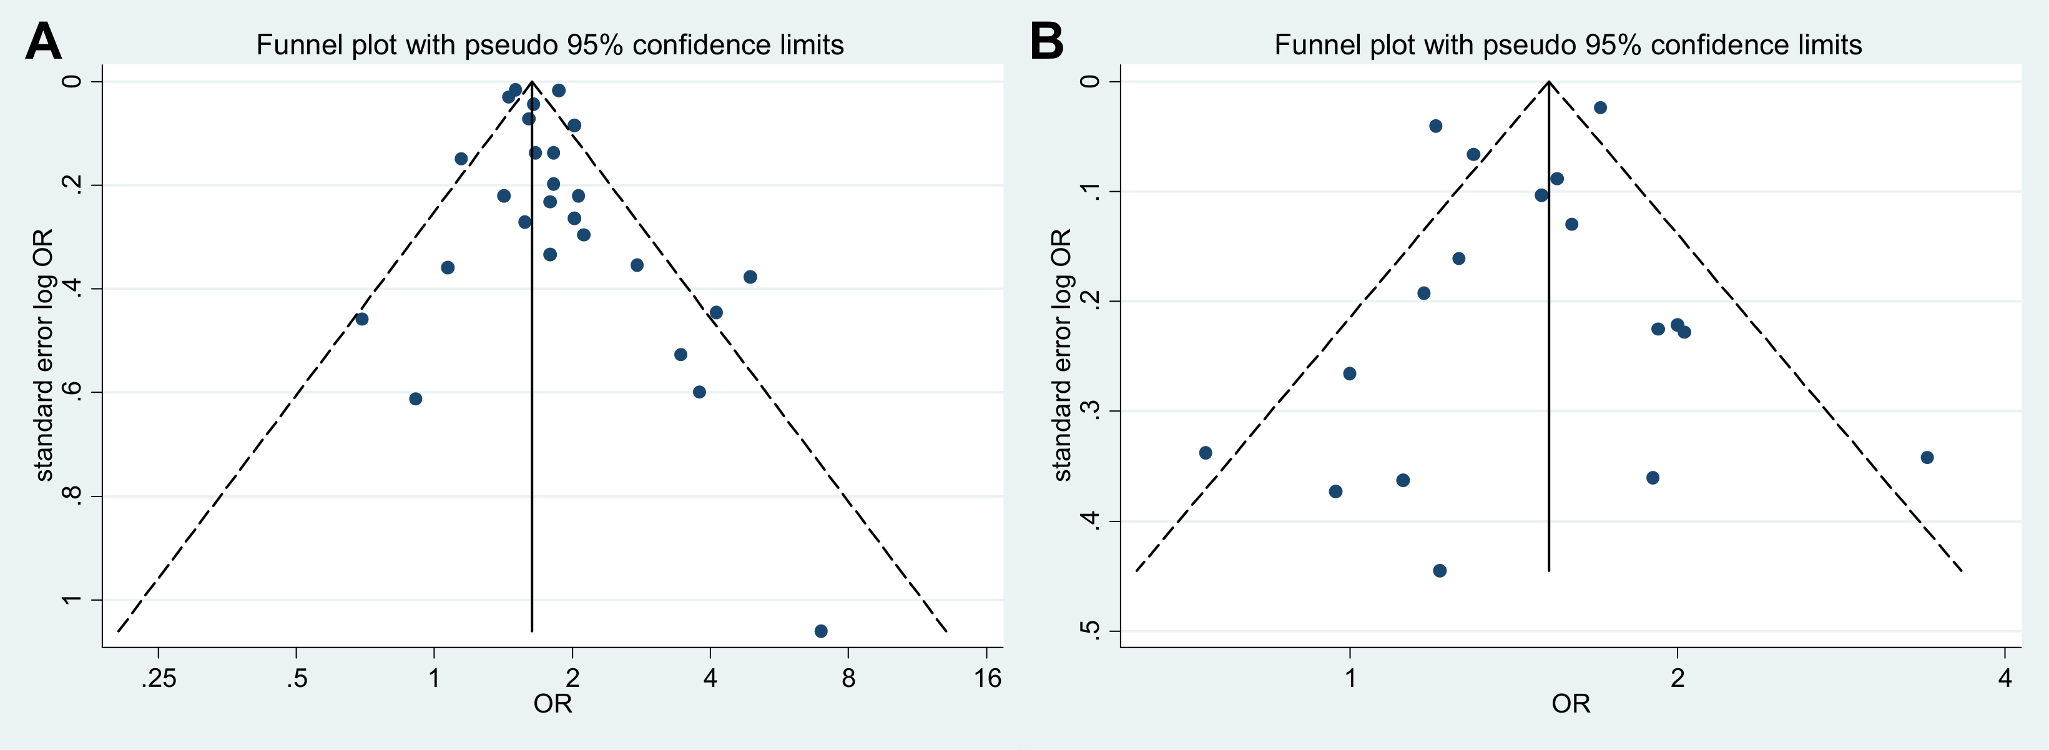 Funnel plots for studies reporting unadjusted and adjusted association measures.